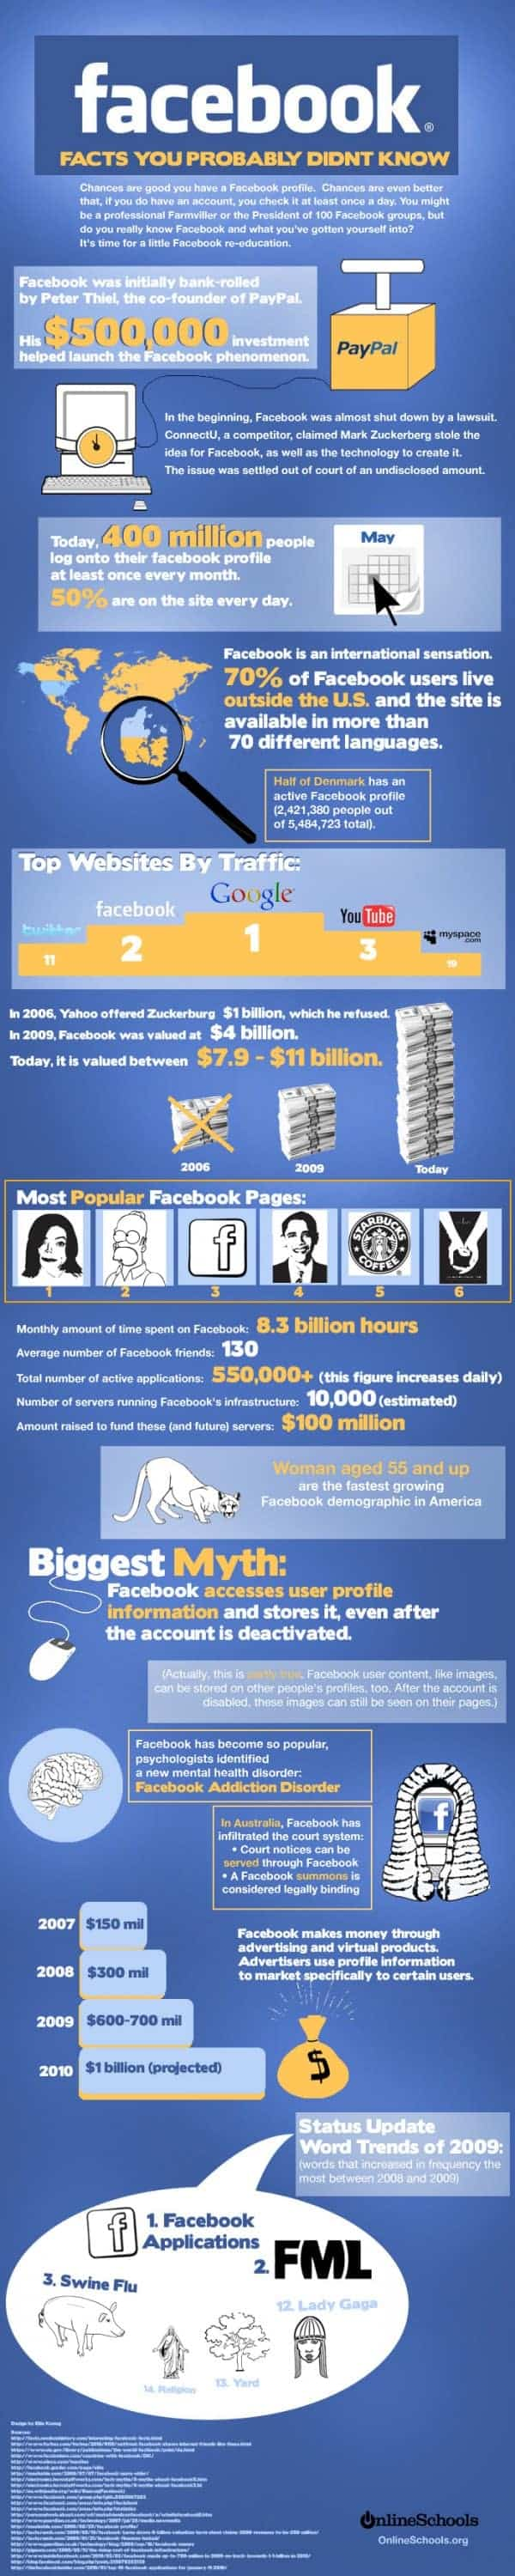 facebook-facts-infographic